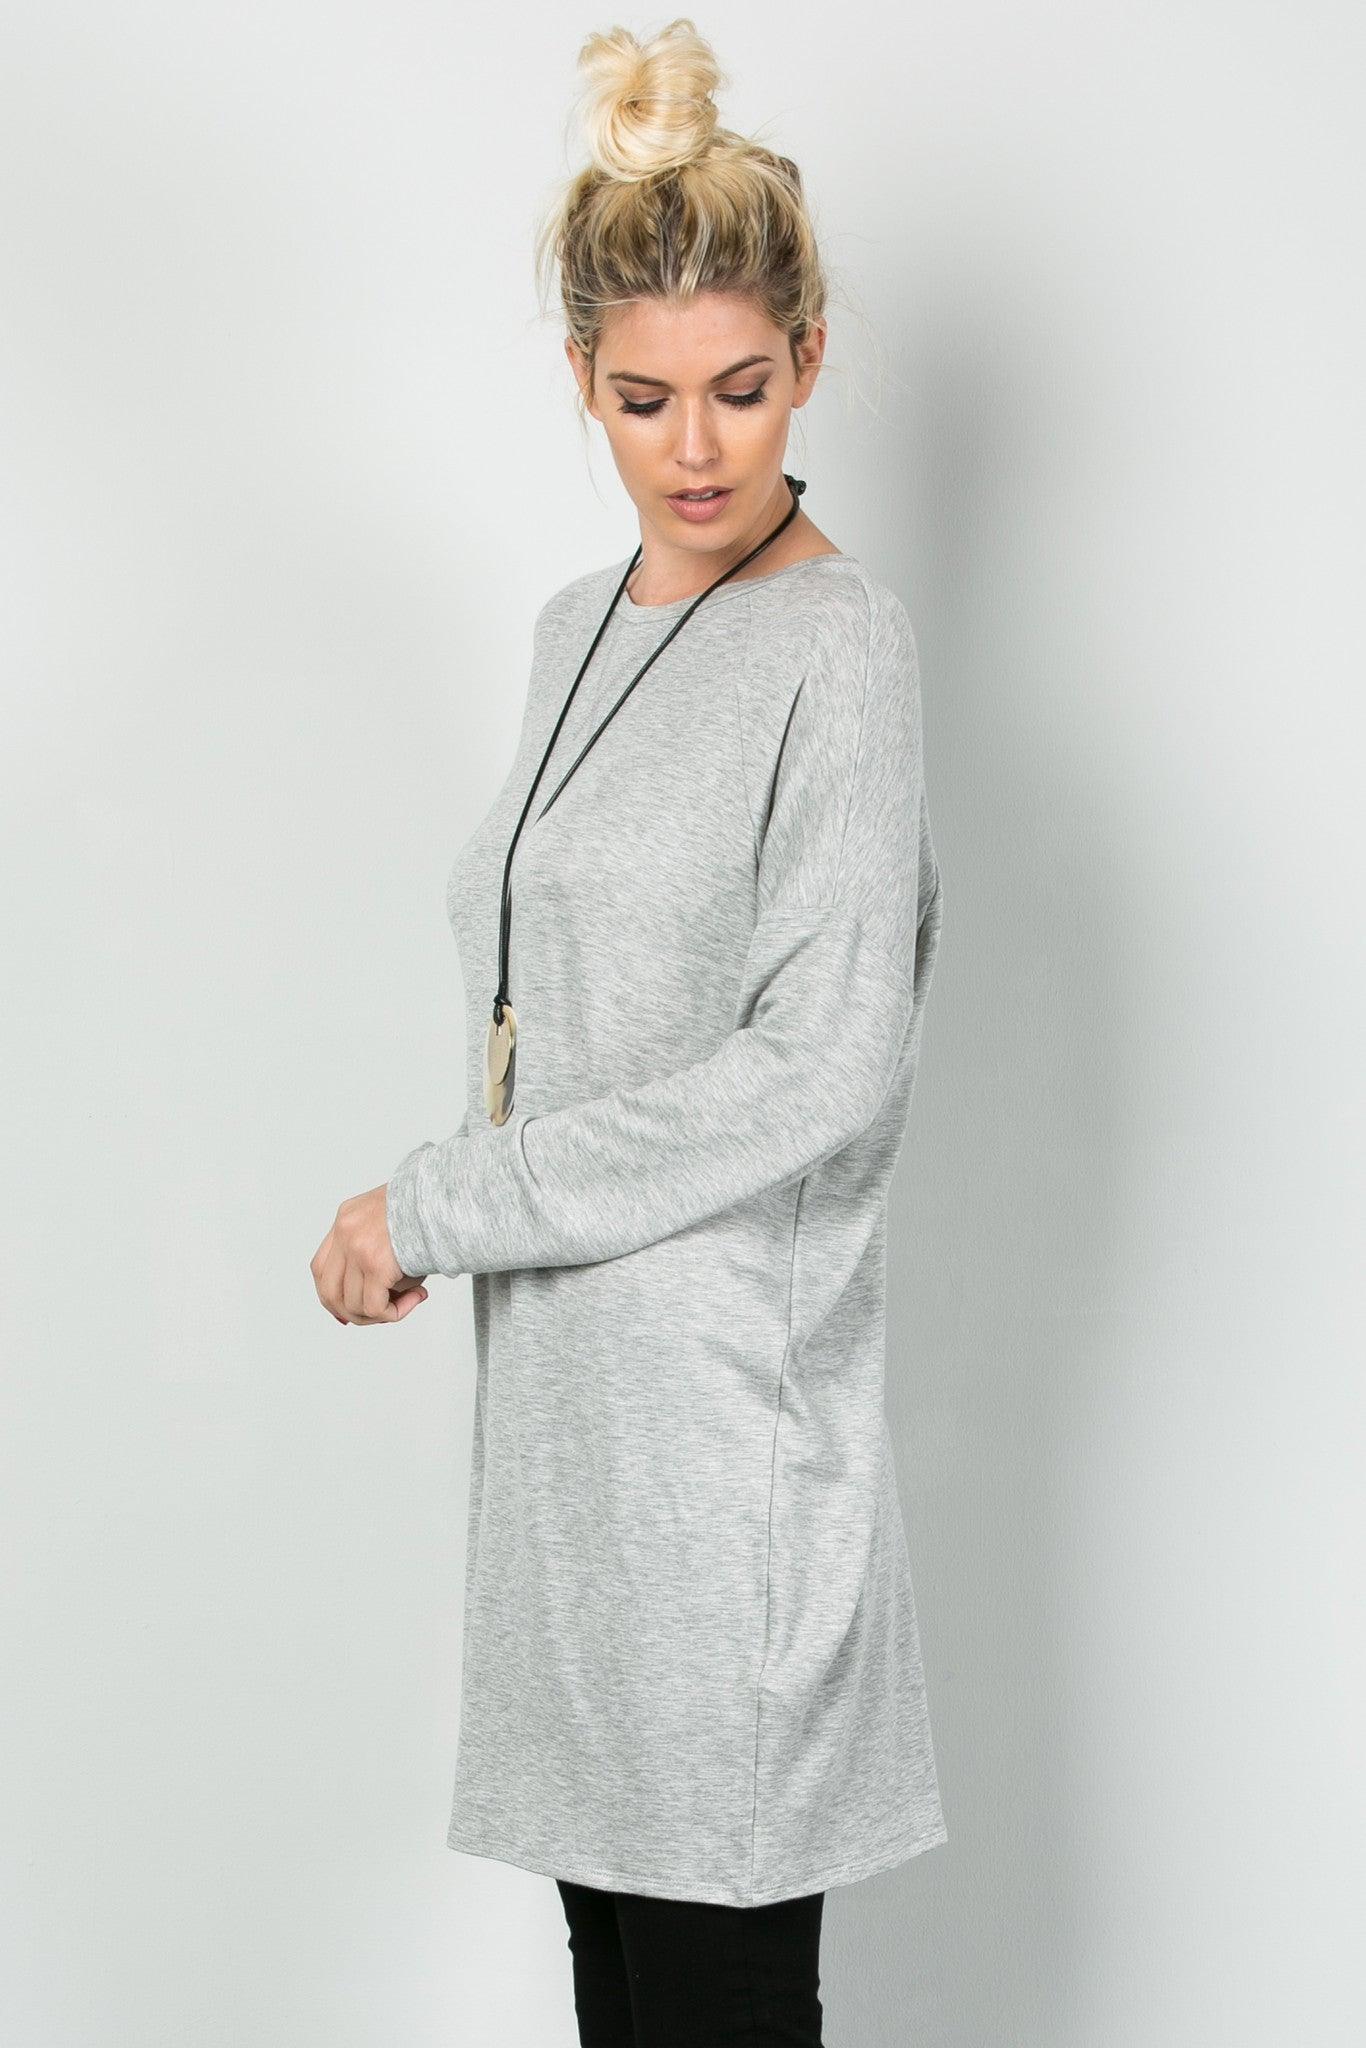 Classic Lazy Top Heather Grey - Tunic - My Yuccie - 2